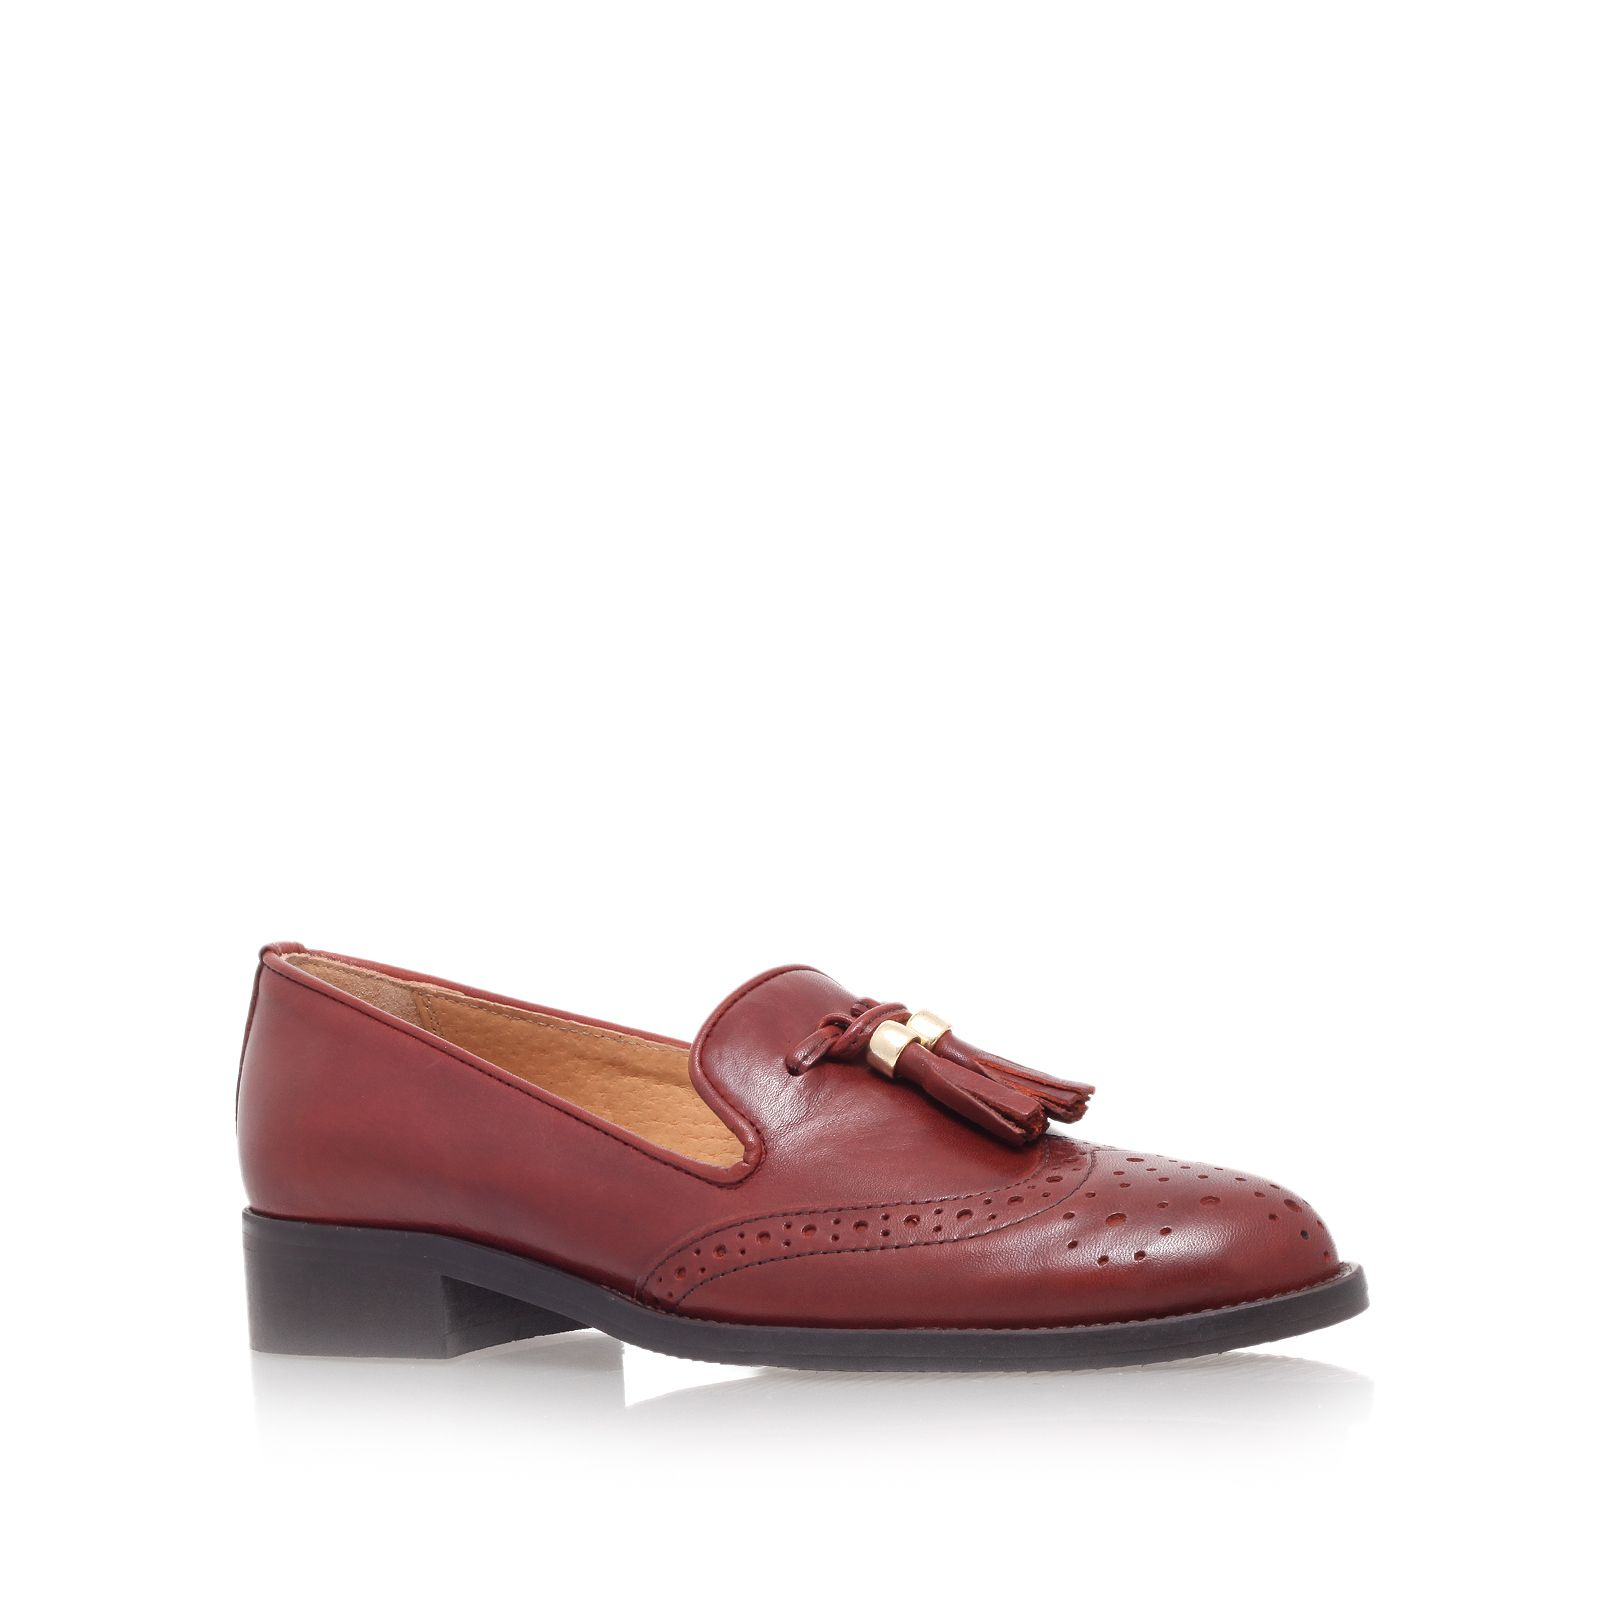 Louis low heel loafer shoes